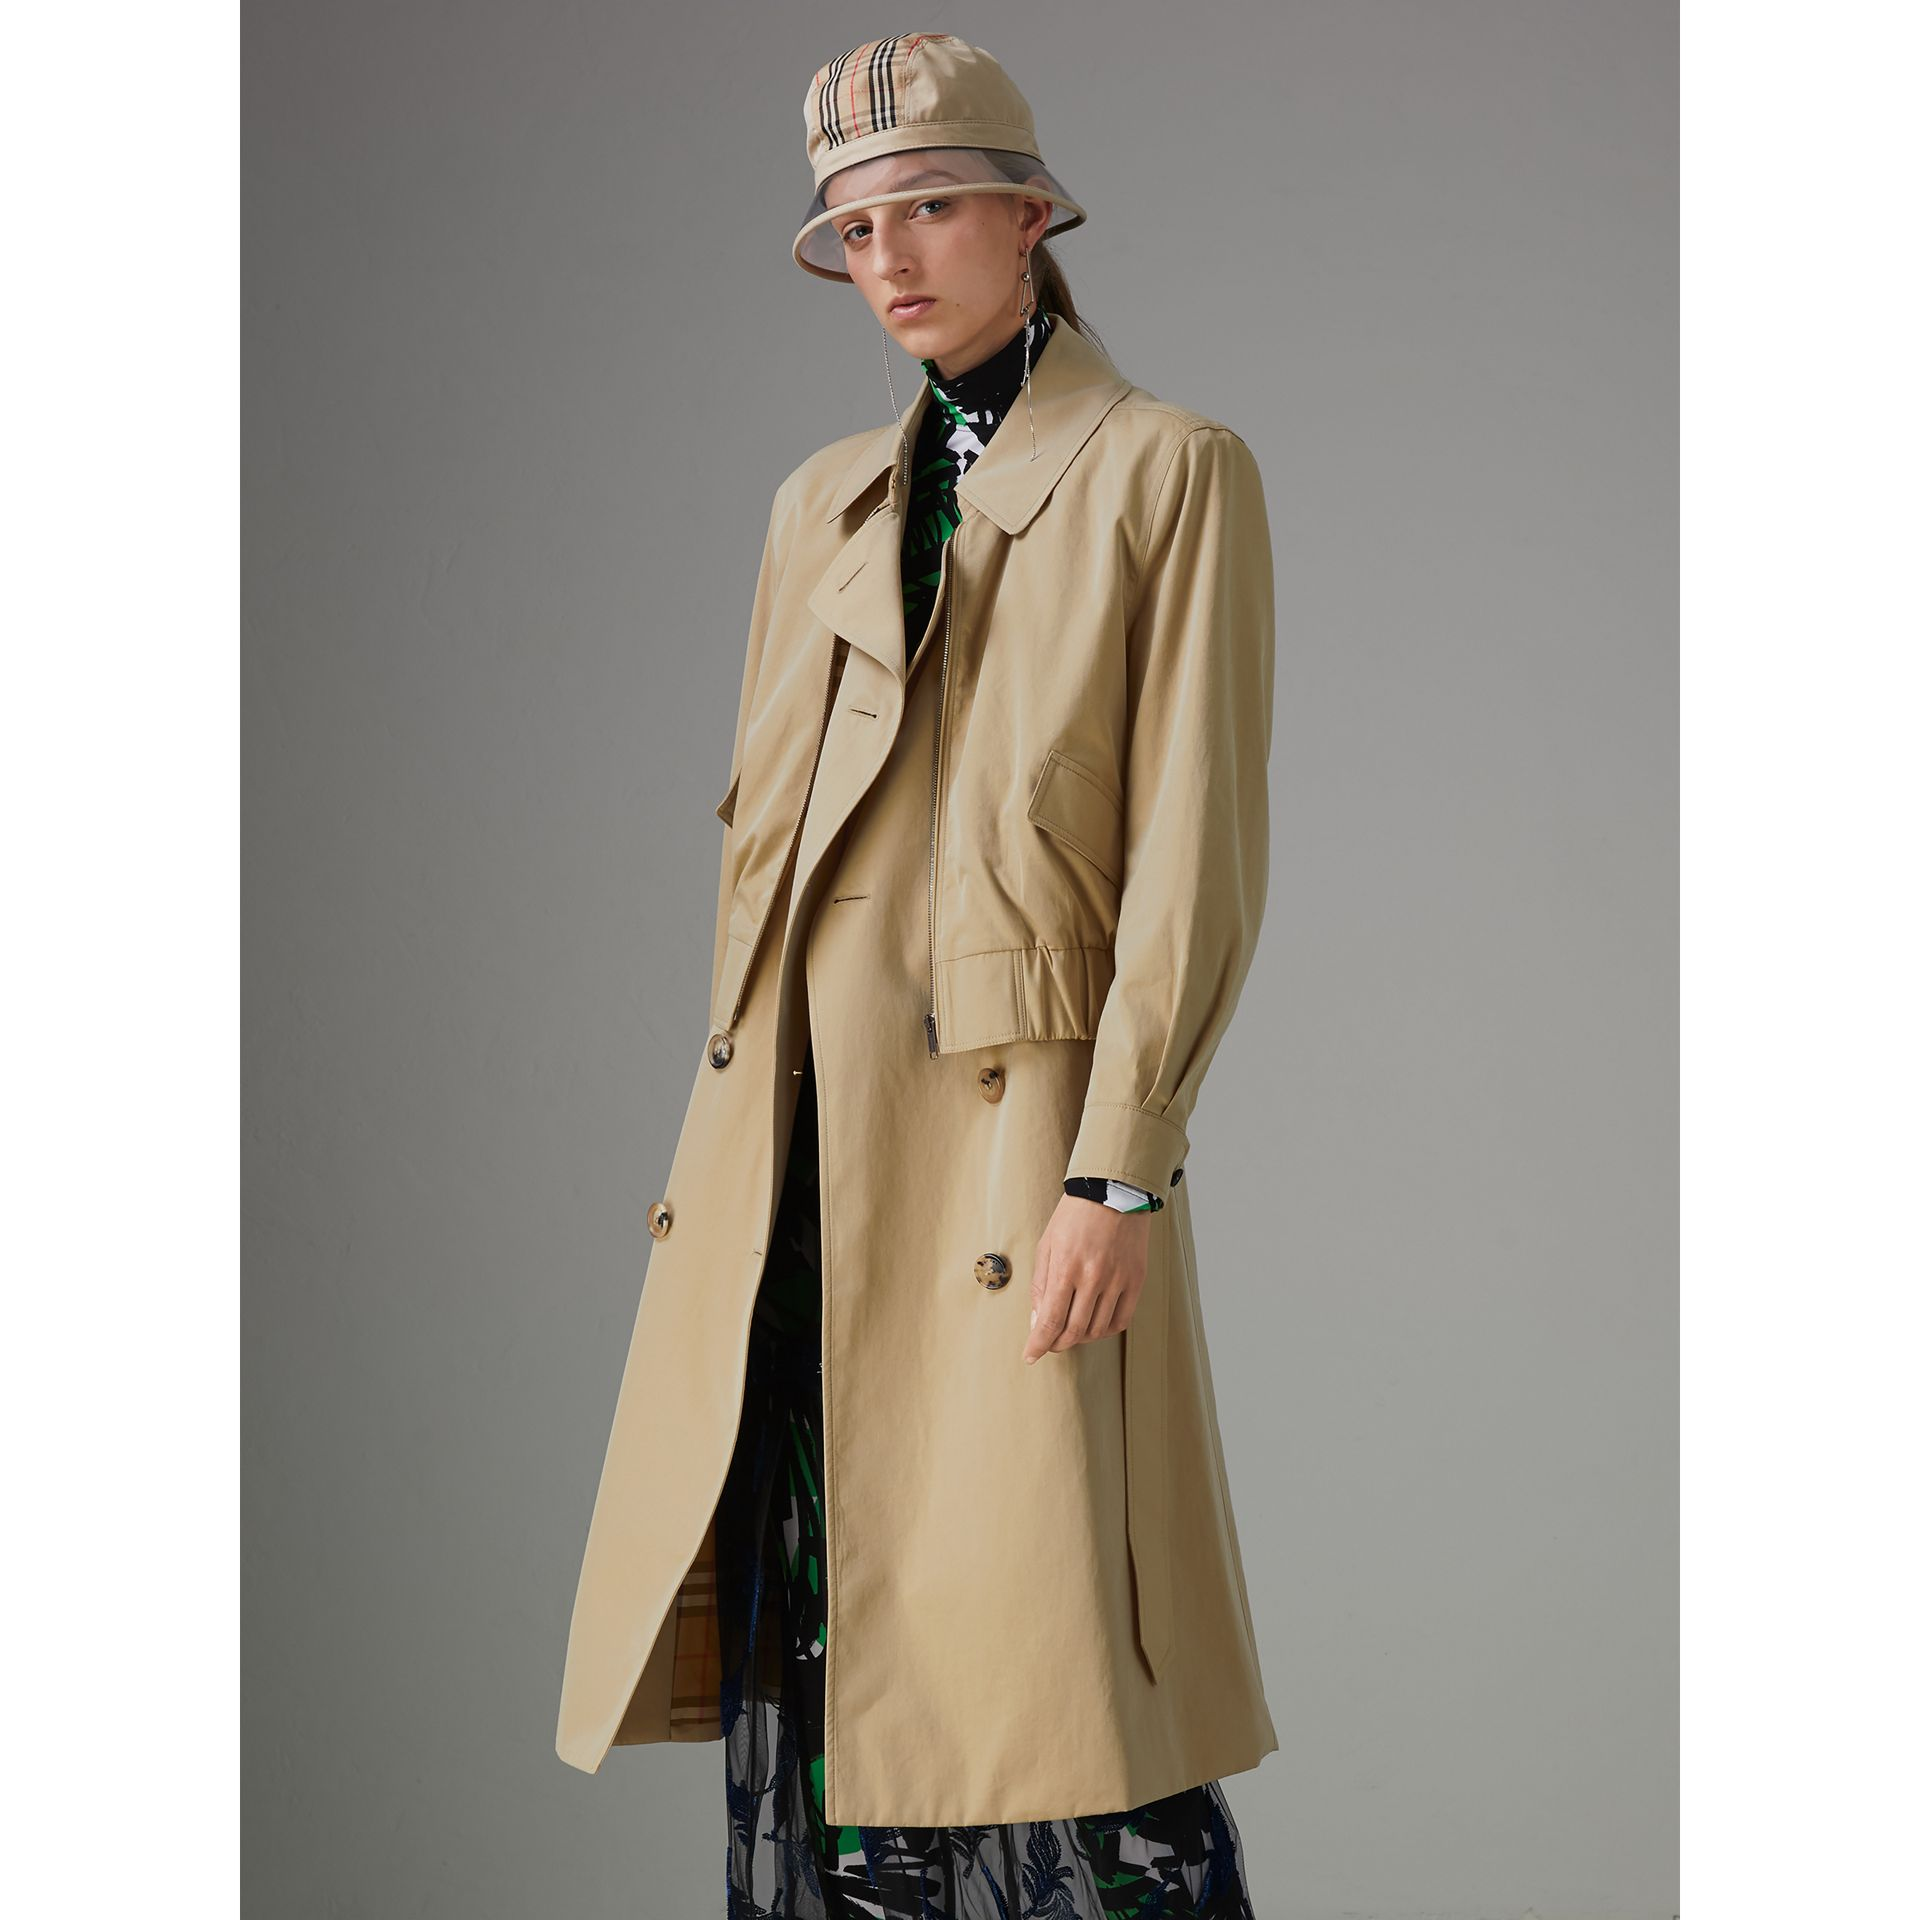 Trench coat Harrington ricostruito in gabardine tropicale (Miele) - Donna | Burberry - immagine della galleria 5